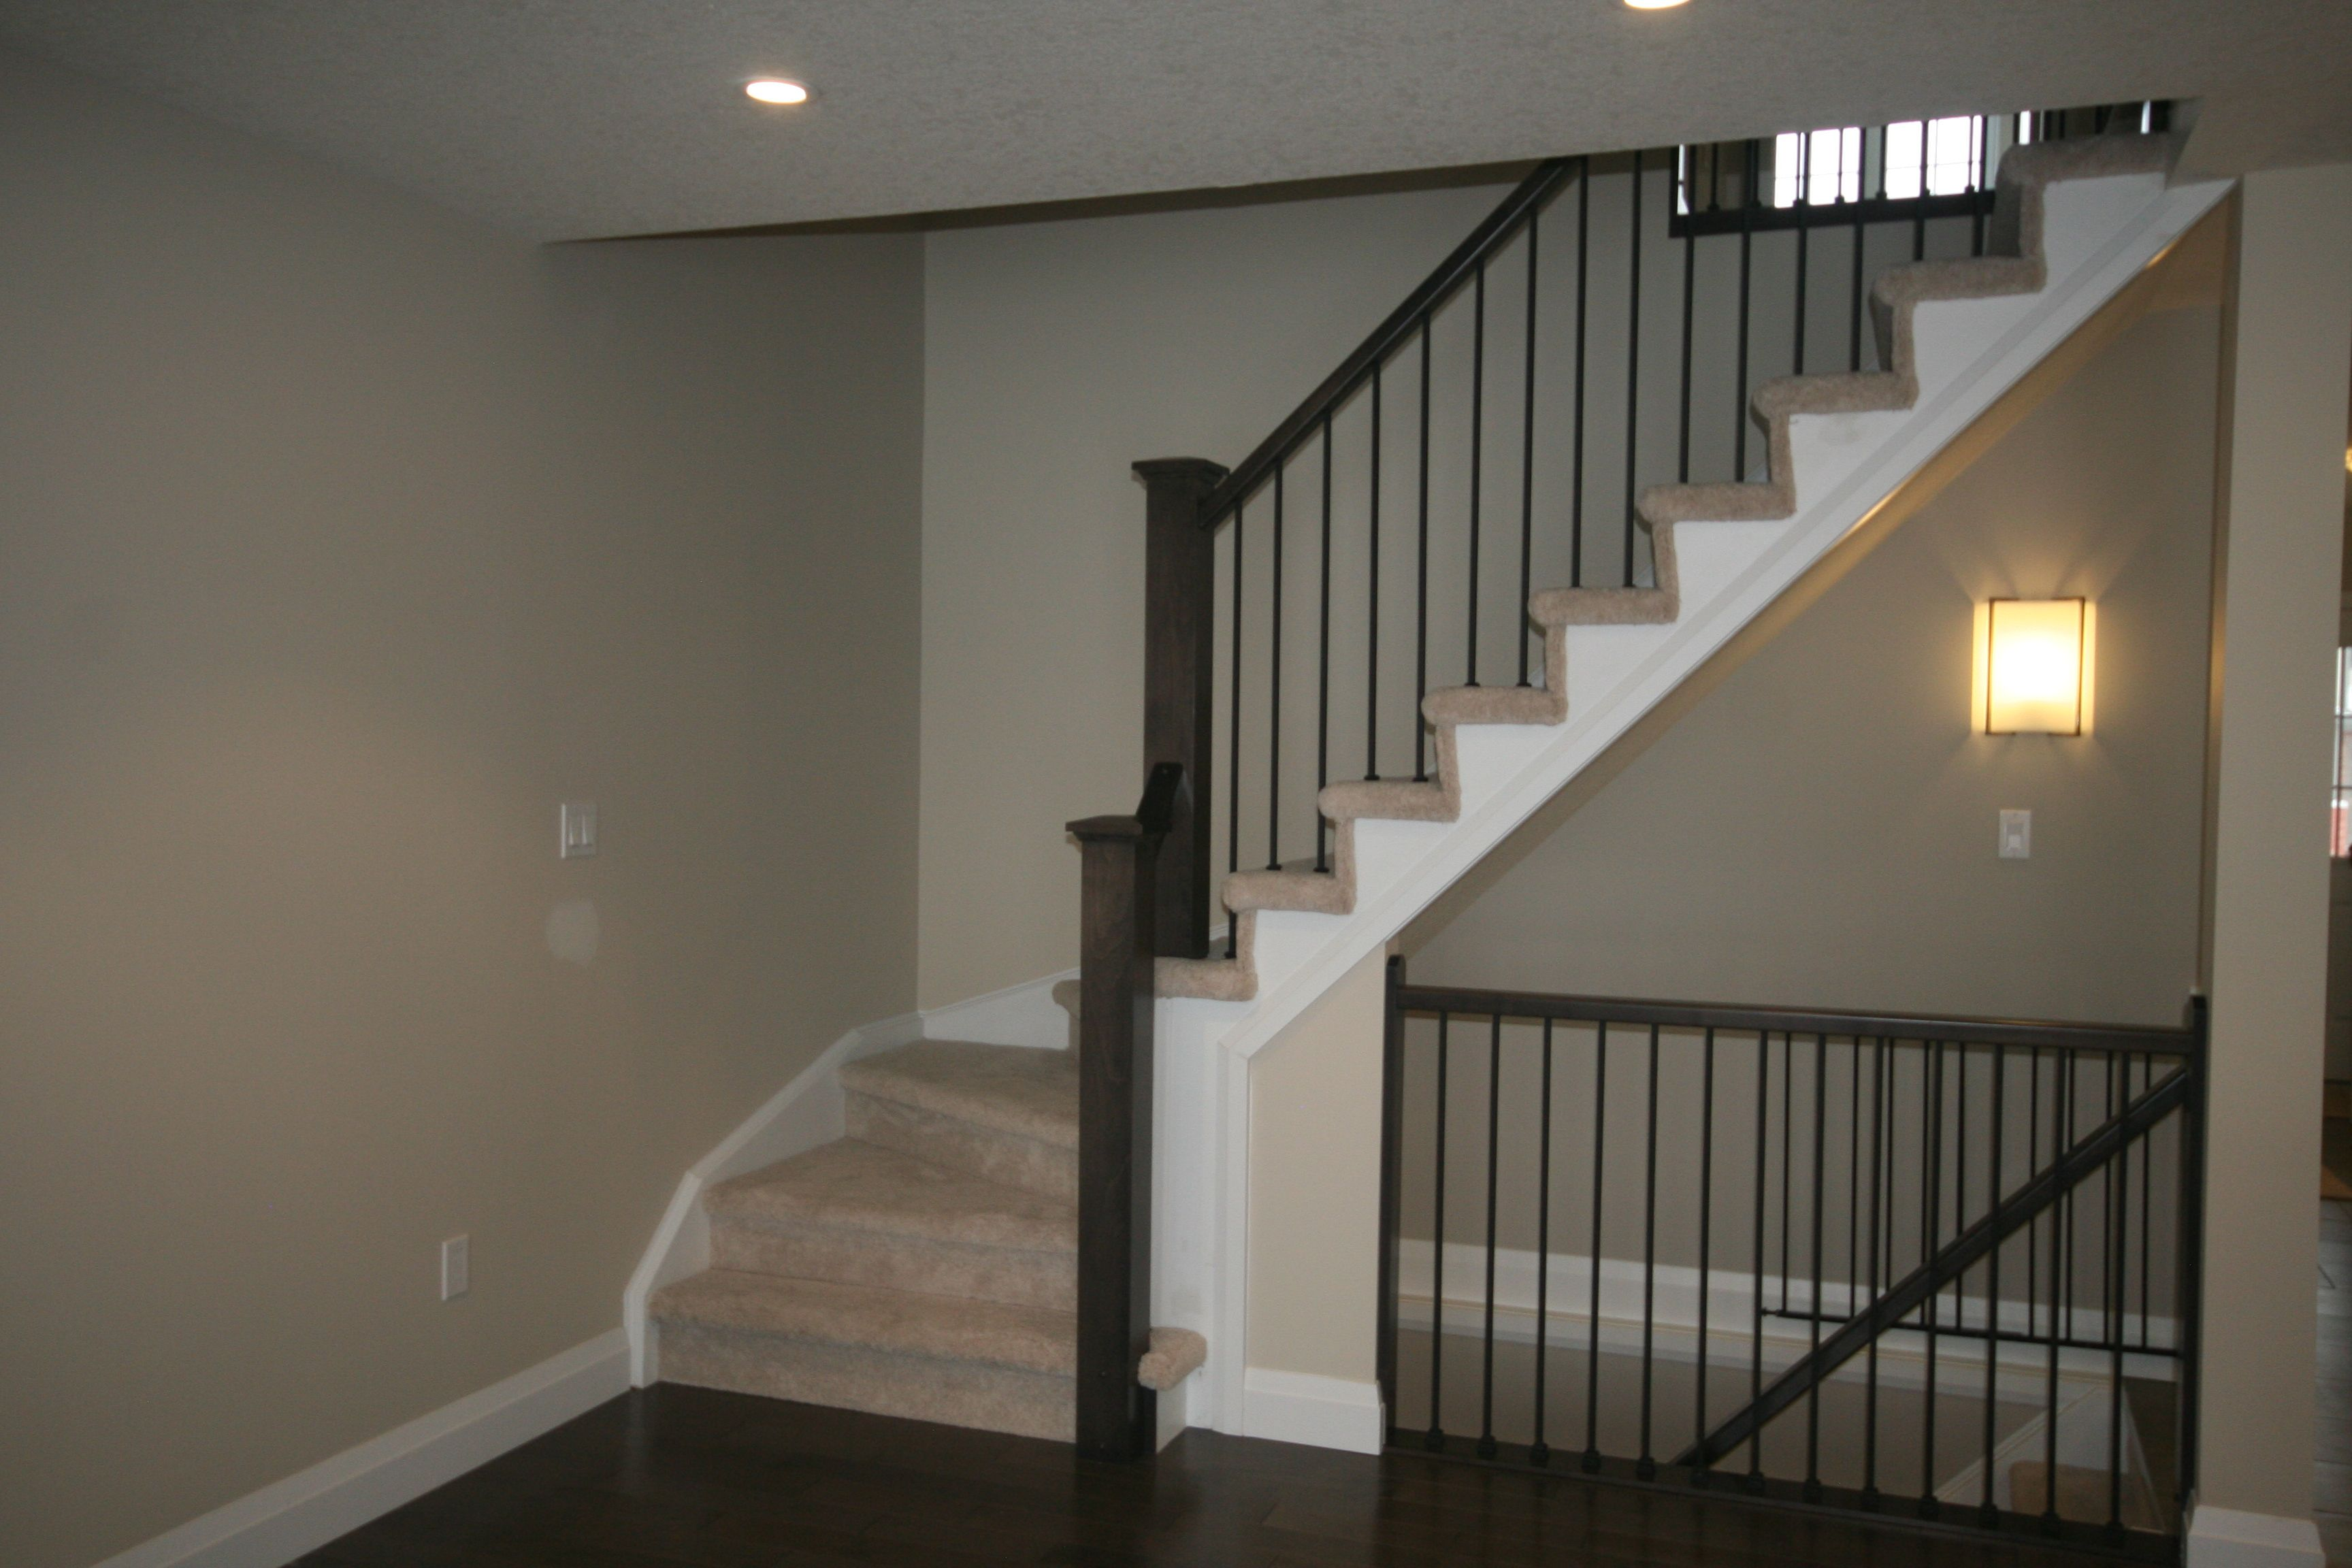 Basement Stairs Ideas: Allowing Light Into The Basement, I Like The Open Idea For